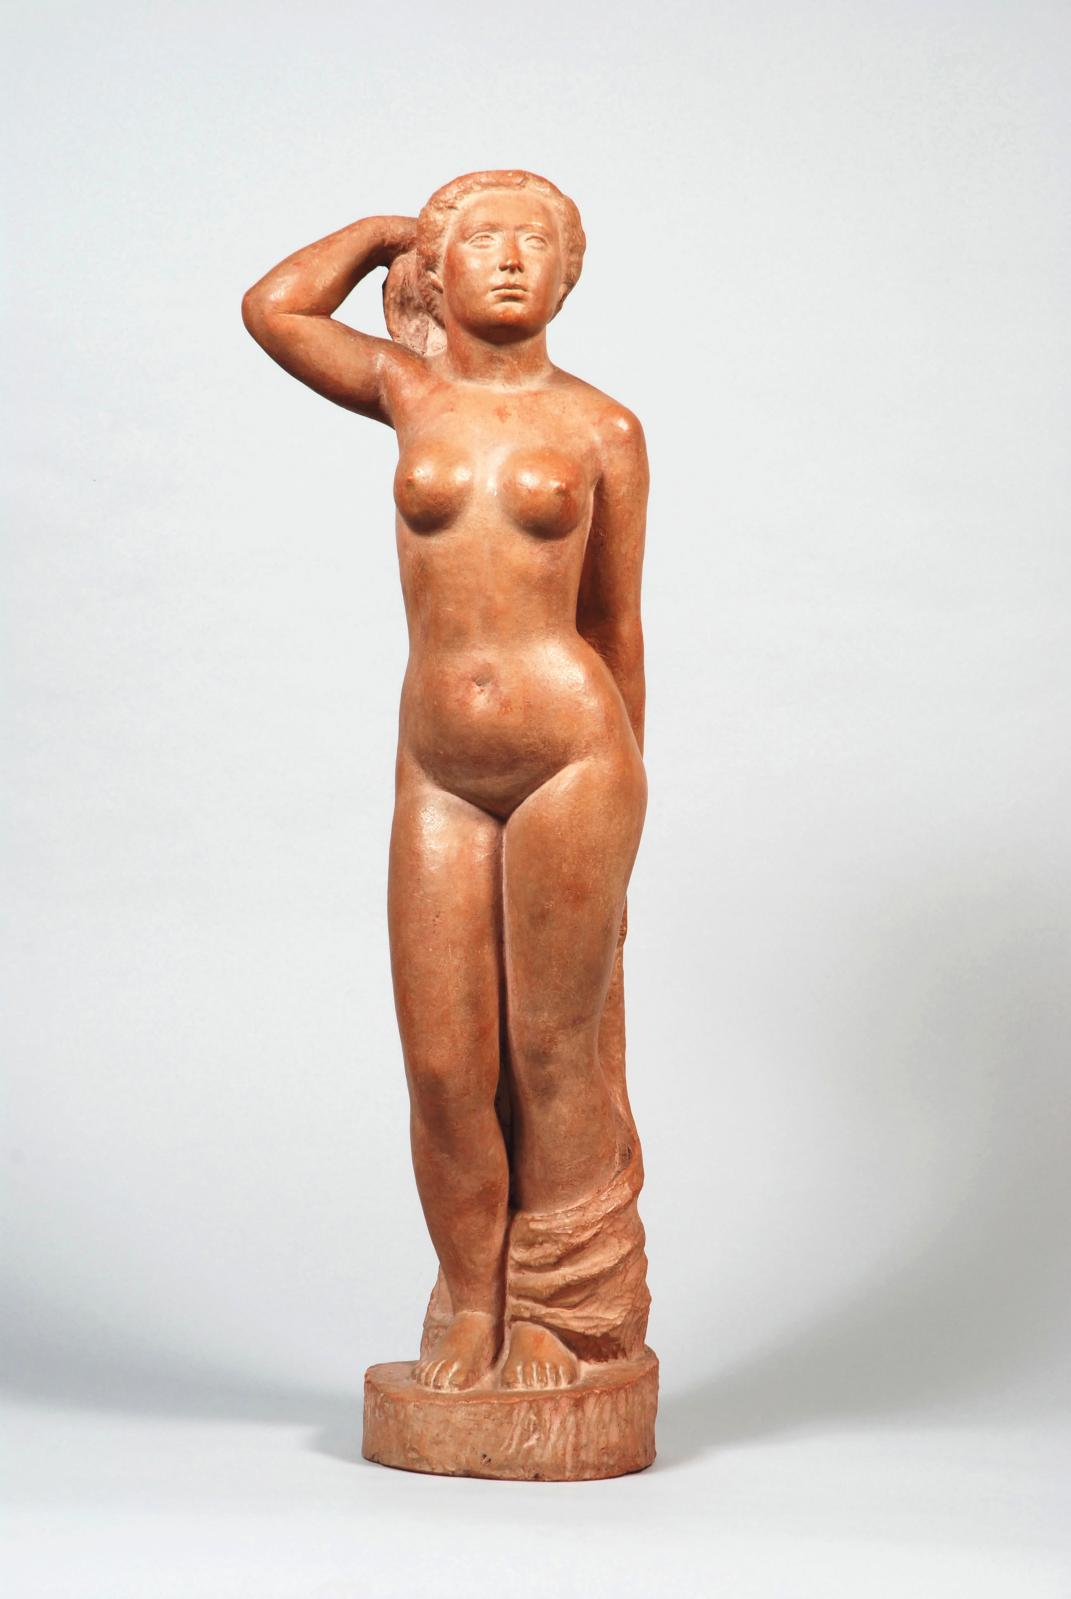 Aristide Maillol (1861-1944), Grande Baigneuse debout, ca. 1920, original proof in terracotta with a pinkish patina, signed on the base, 7